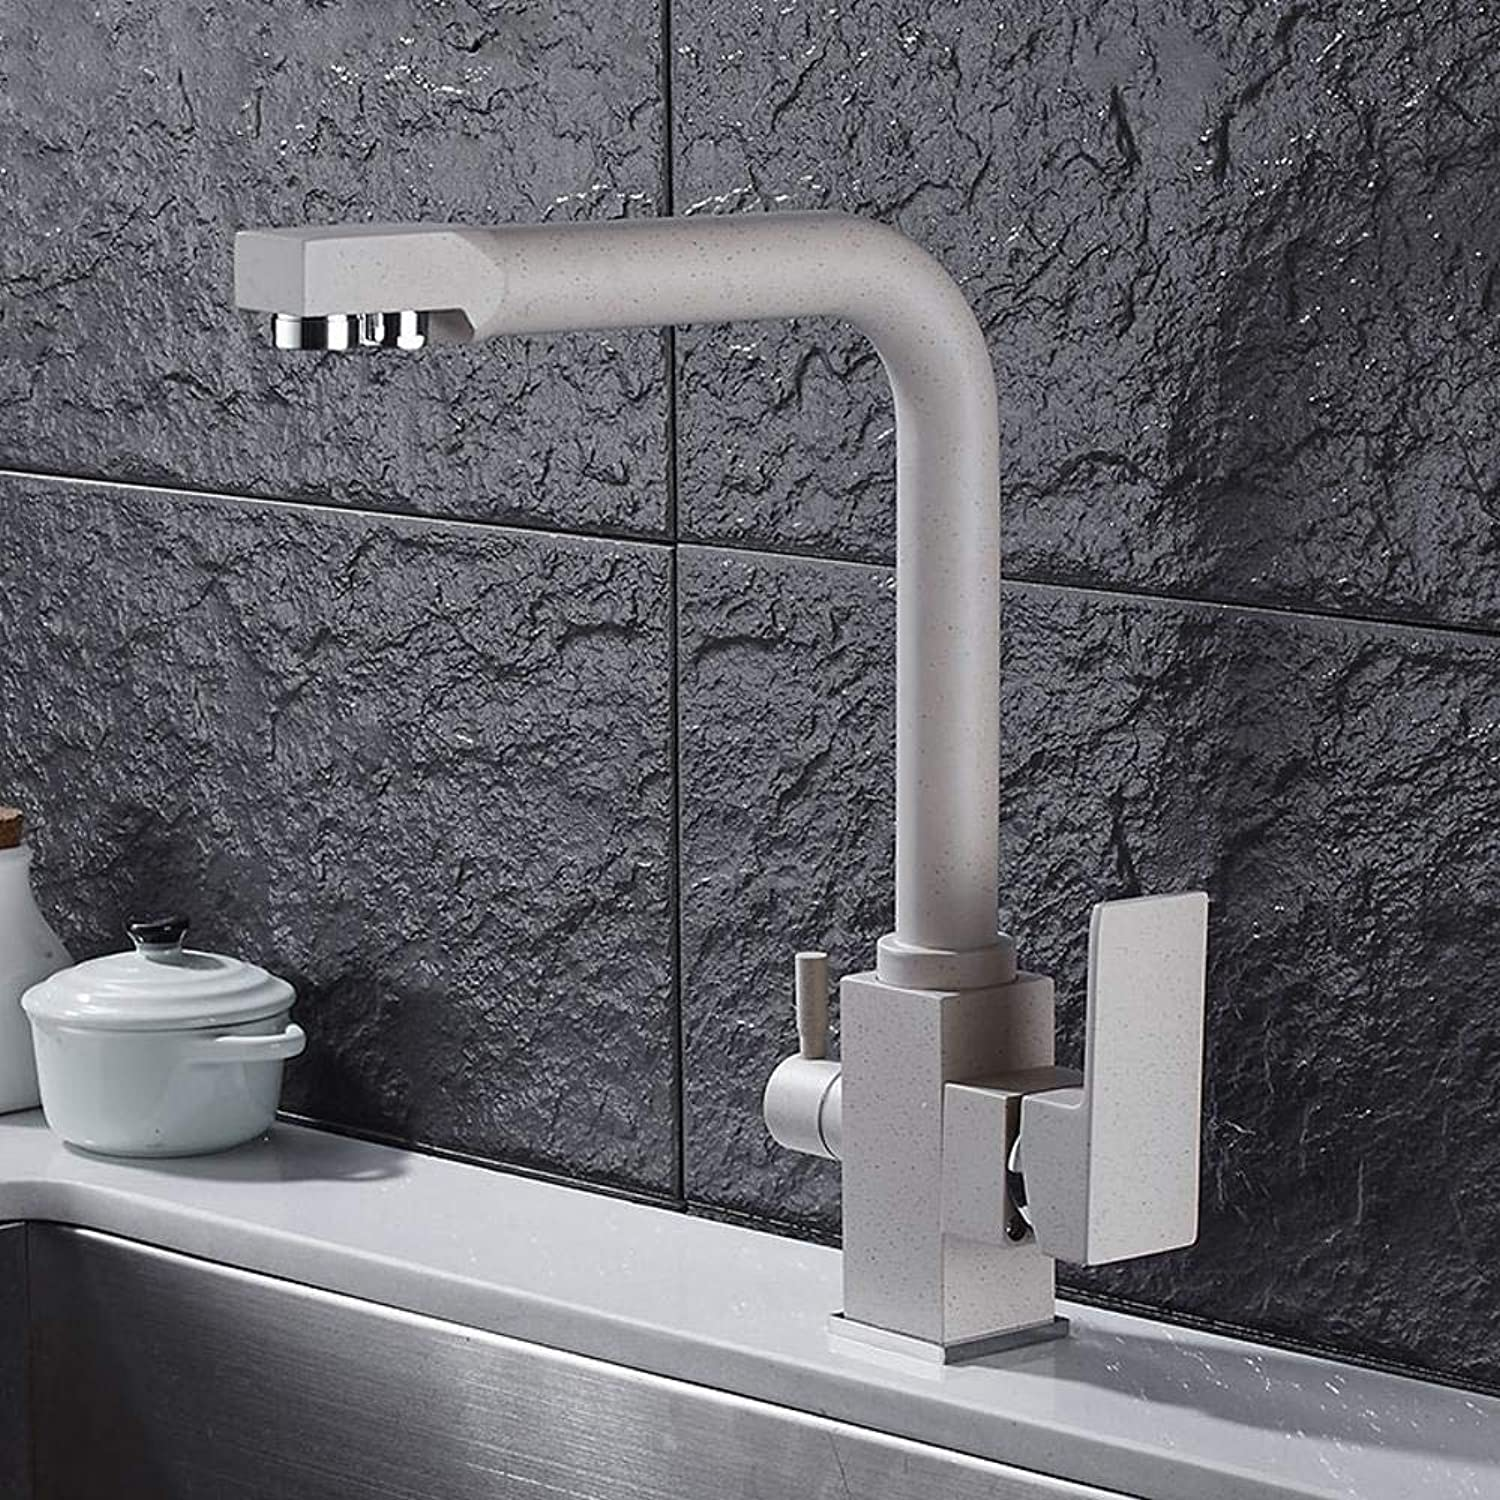 Lxj Faucet hot and cold kitchen three with water purifier faucet sink faucet redary effluent